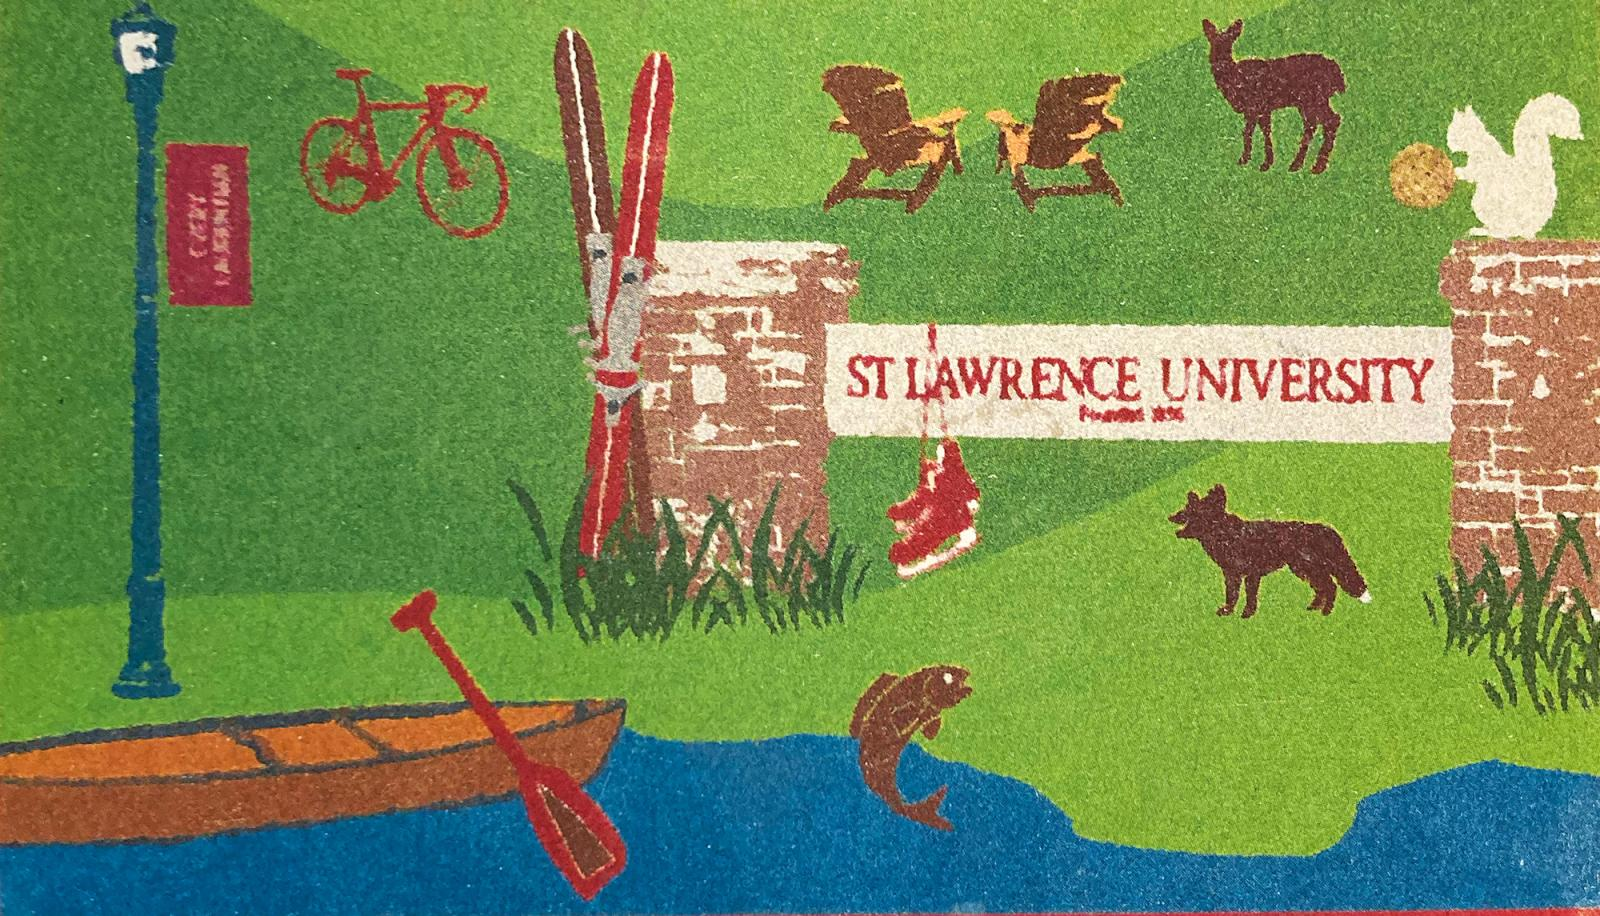 watercolor graphic of campus scene with animals and canoe